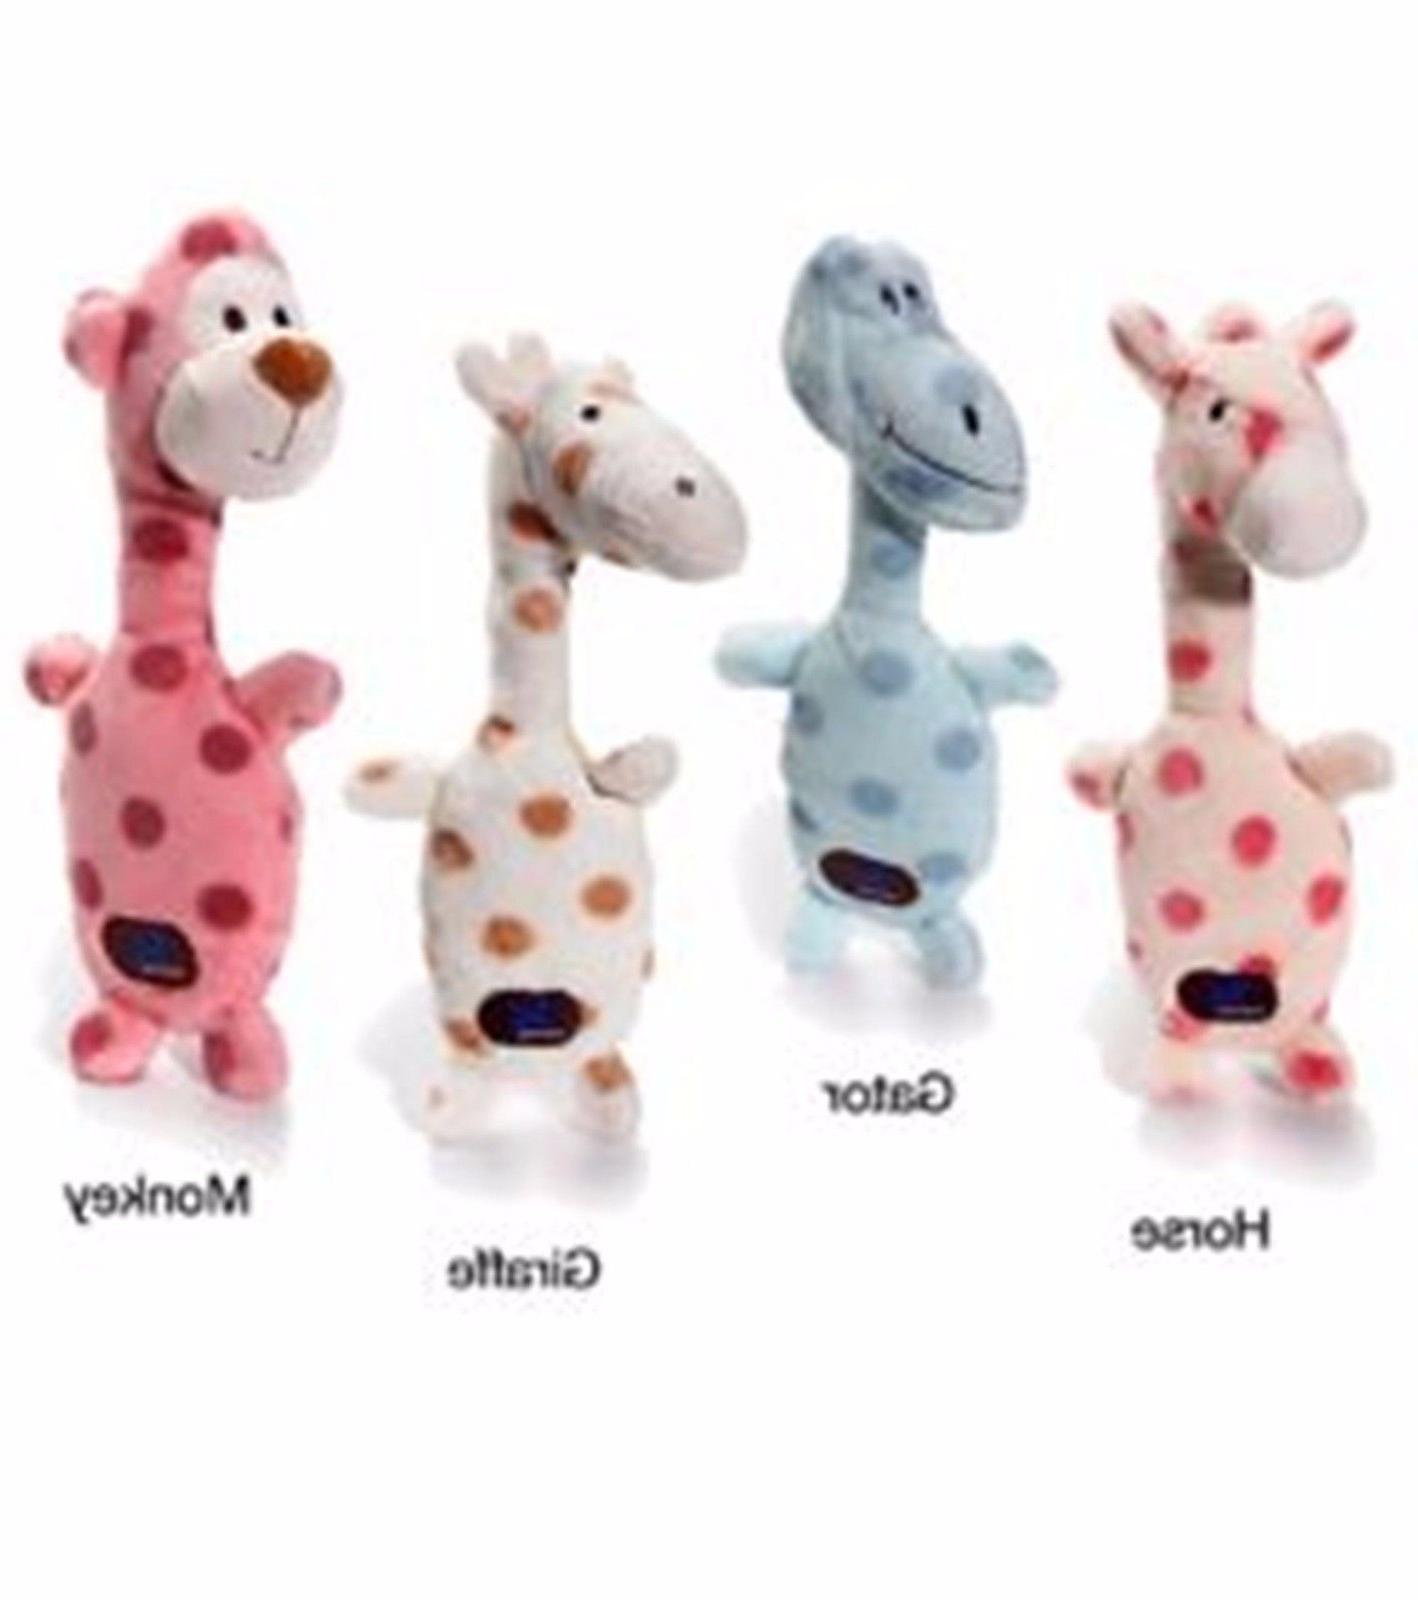 Charming Pet Poppin Polkies Dog Toy Horse Giraffe Monkey Or